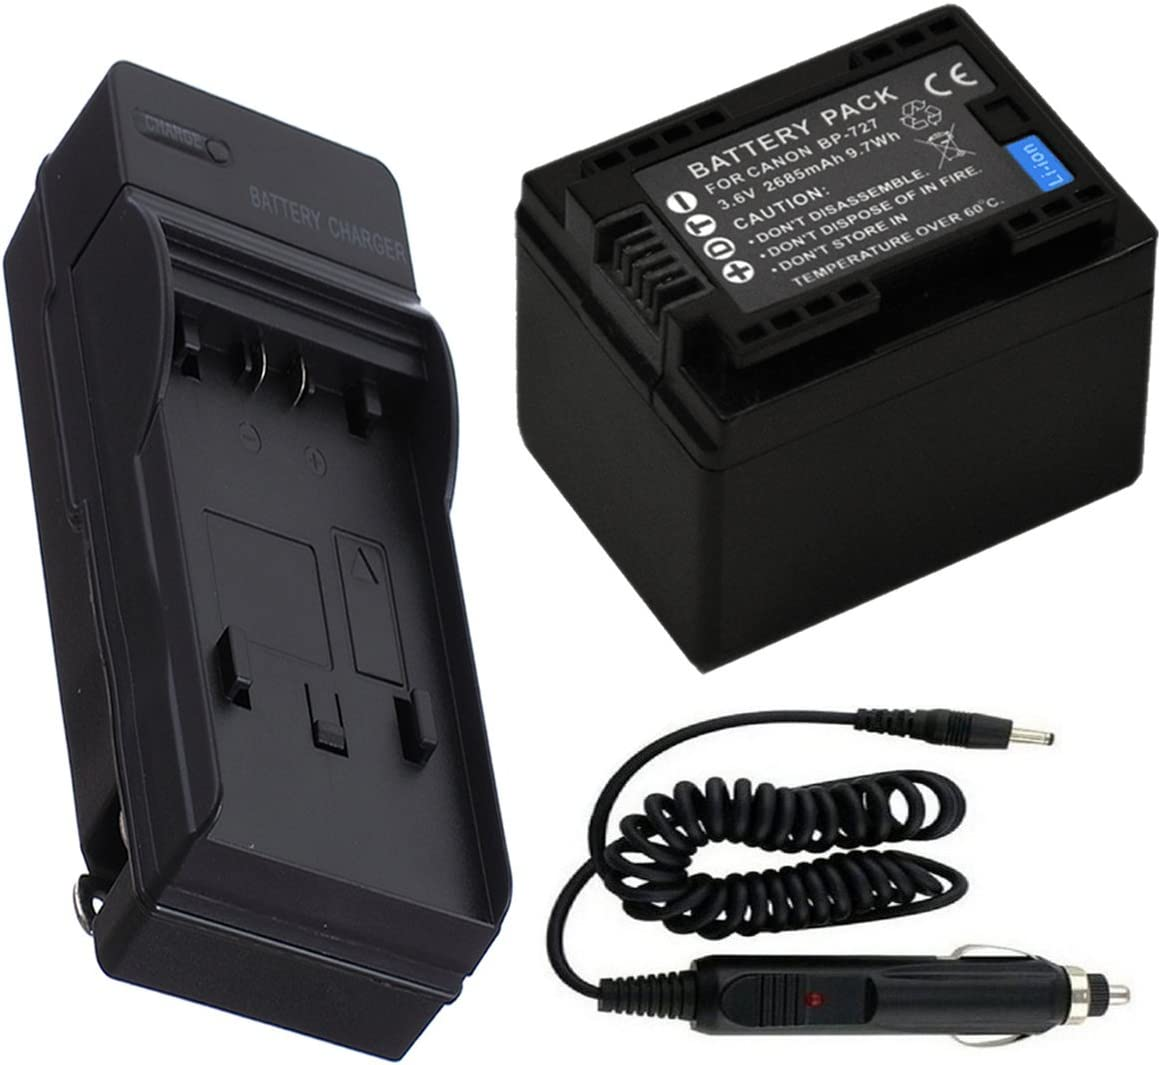 USB Battery Charger for Canon LEGRIA HF R56 R57 R66 R67 R68 HD Camcorder